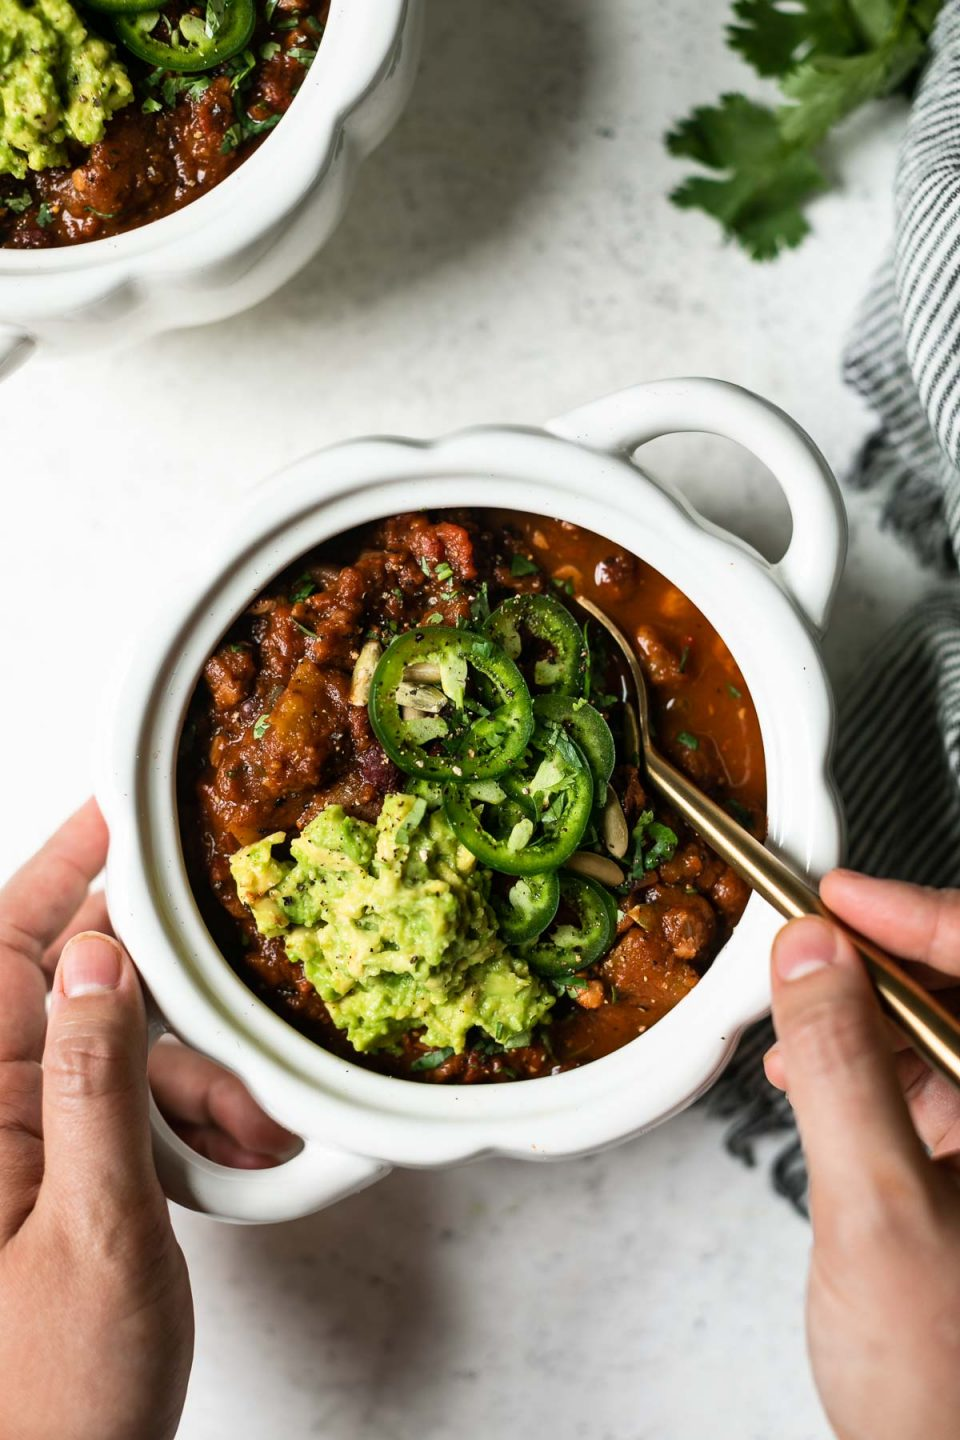 Vegan pumpkin chili shown in a white, pumpkin-shaped bowl. A woman's hands hold the bowl & a gold spoon, taking a spoonful of chili out of the bowl. The bowl sits atop a white surface, nestled next to a striped linen napkin. A second bowl of chili peeks into the top of the frame.